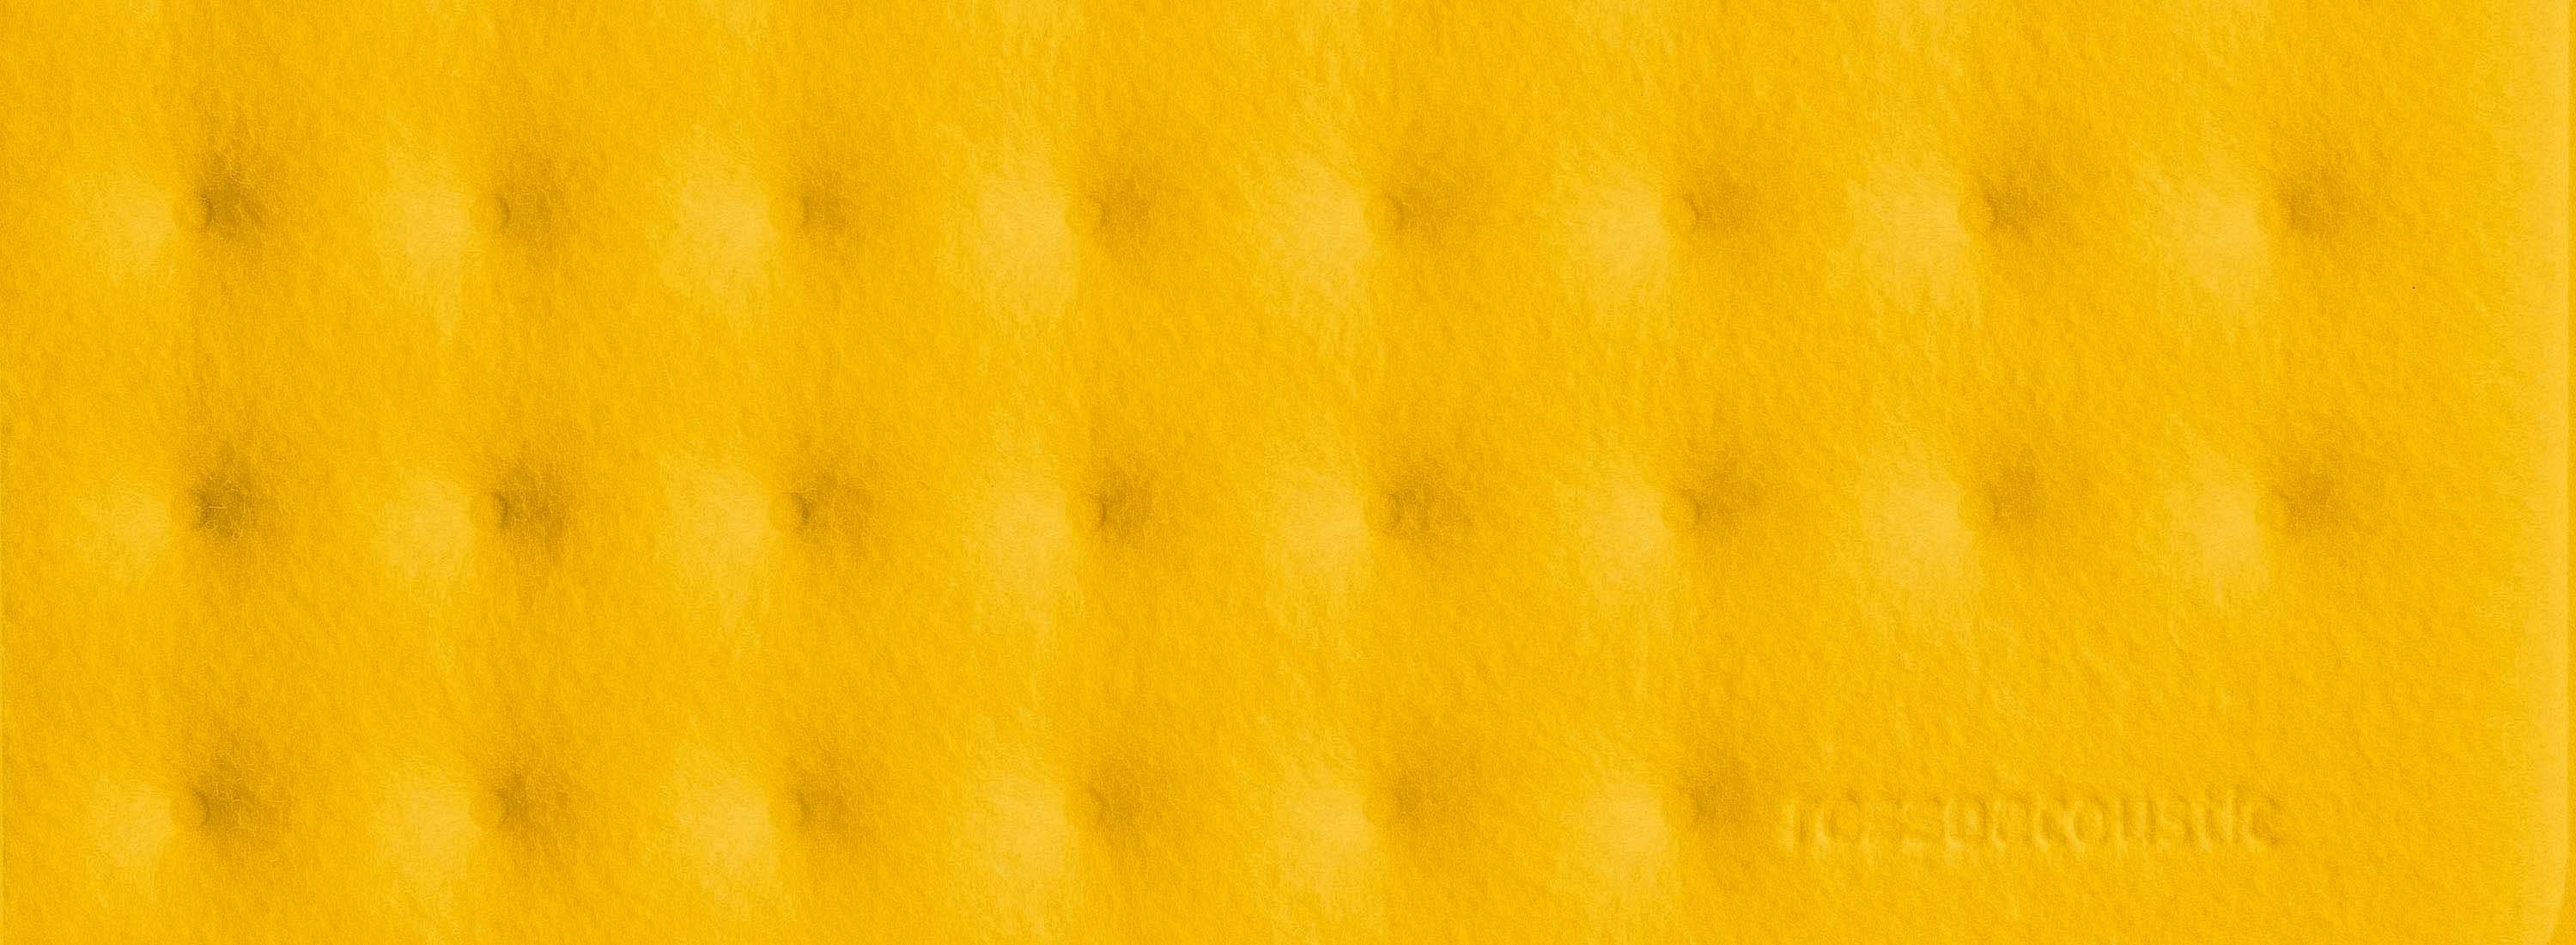 Rossoacoustic PAD R 1200 Plus, Ø1290 x 60 mm, yellow field